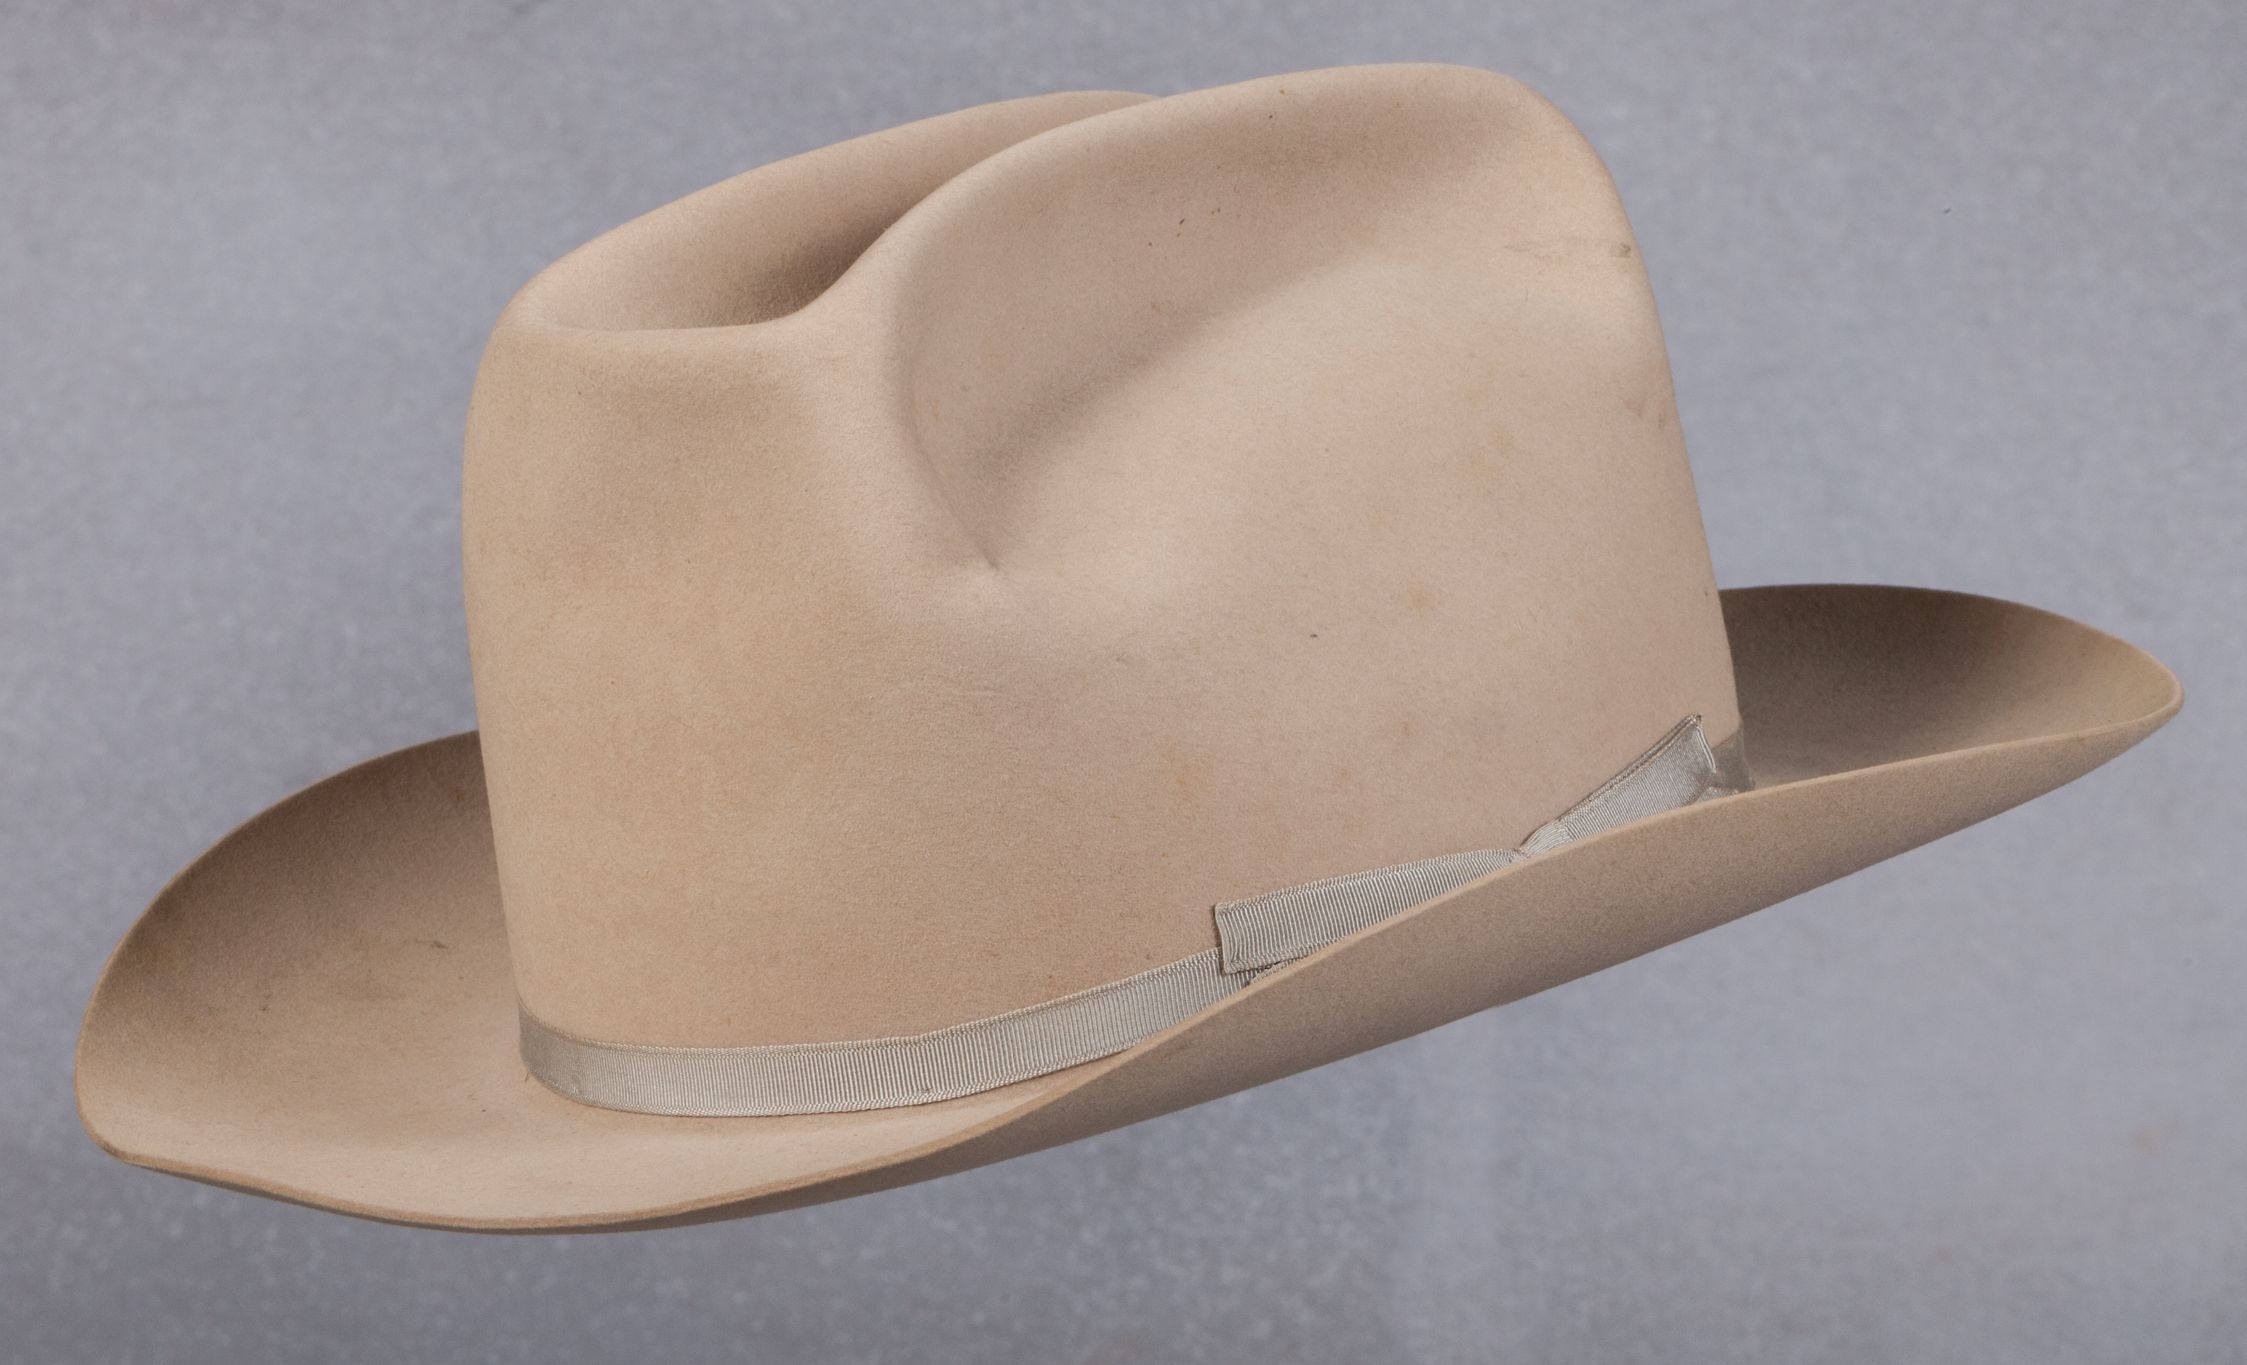 8b8ad9fd93a4f Chill Wills  Personal Stetson Hat Cattleman s style cowboy hat. Inside  marks